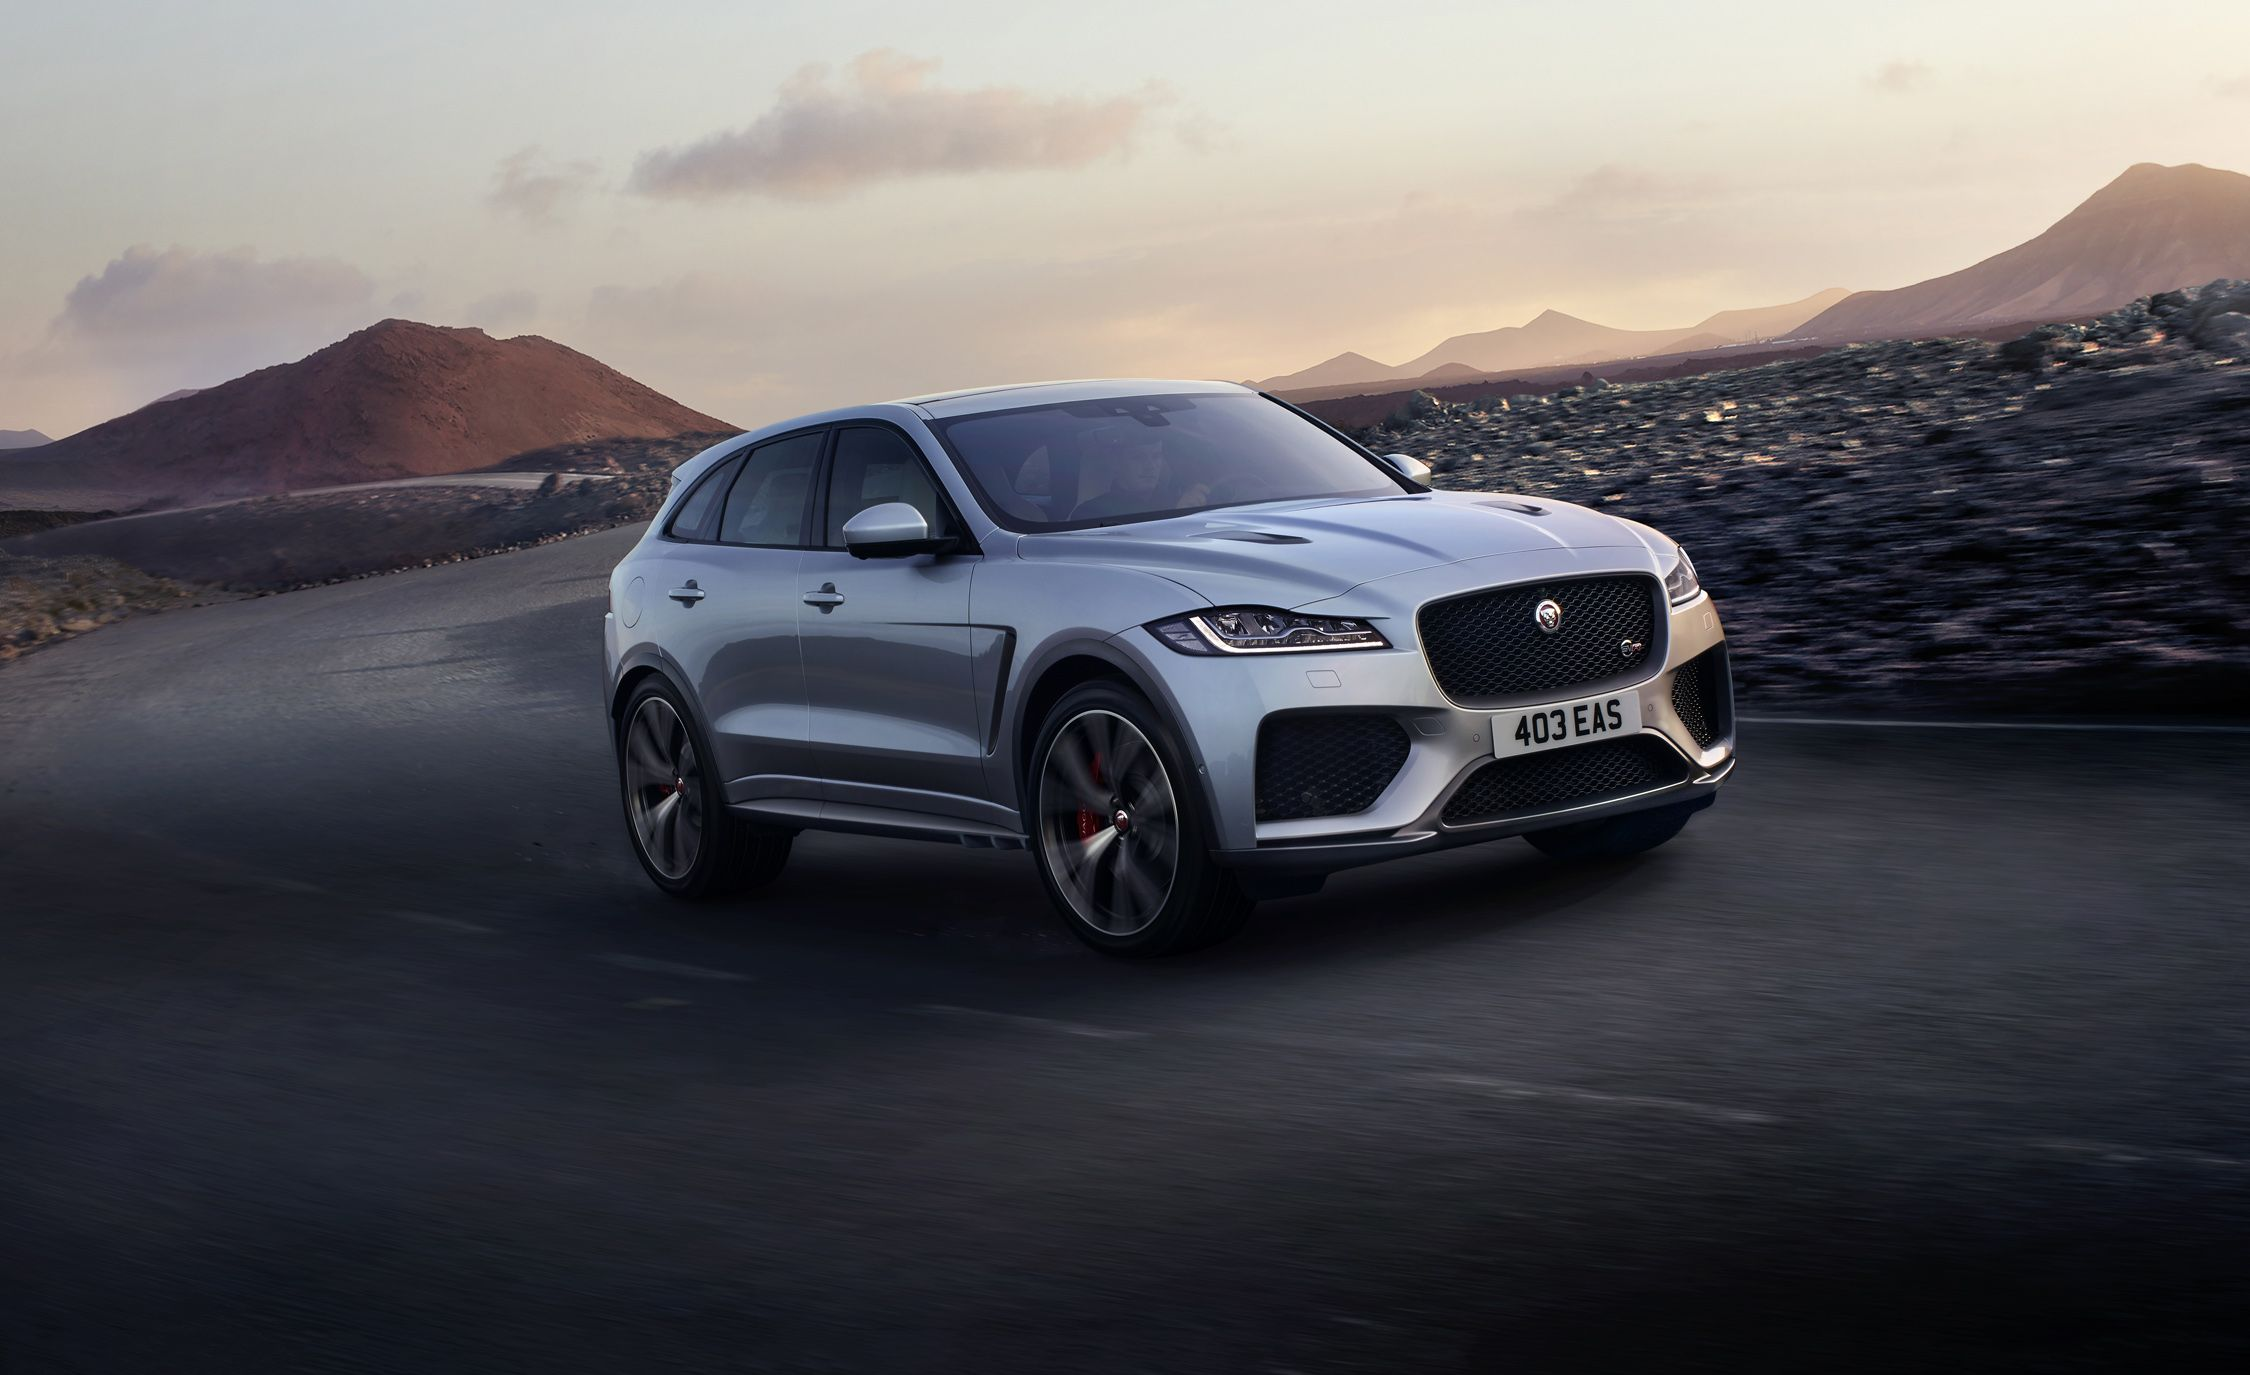 2019 Jaguar F-Pace SVR Packs 550 HP | News | Car and Driver